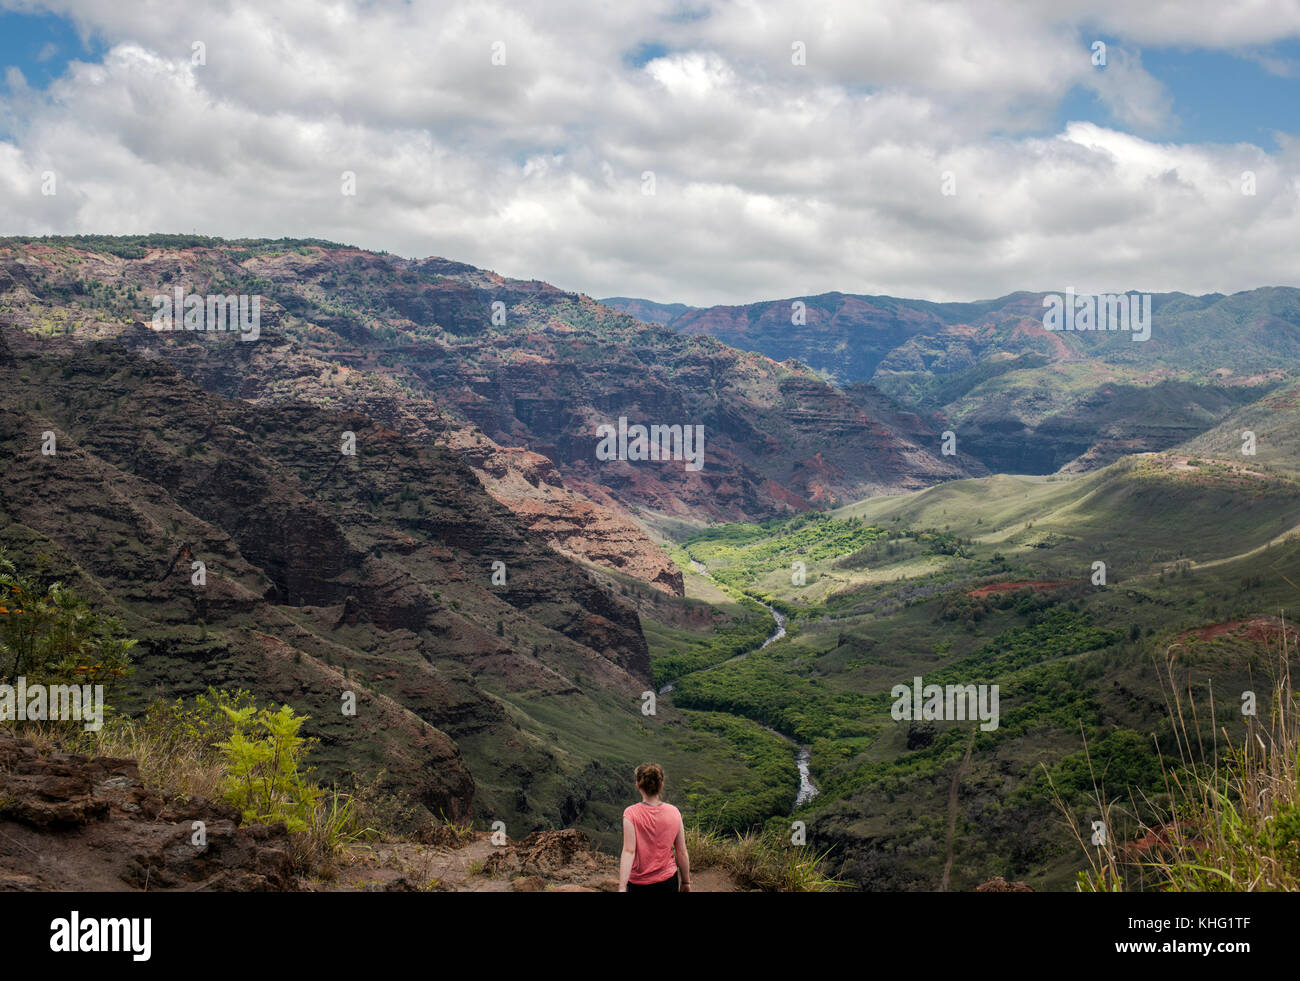 Teen girl at a Waimea Canyon viewpoint - Stock Image